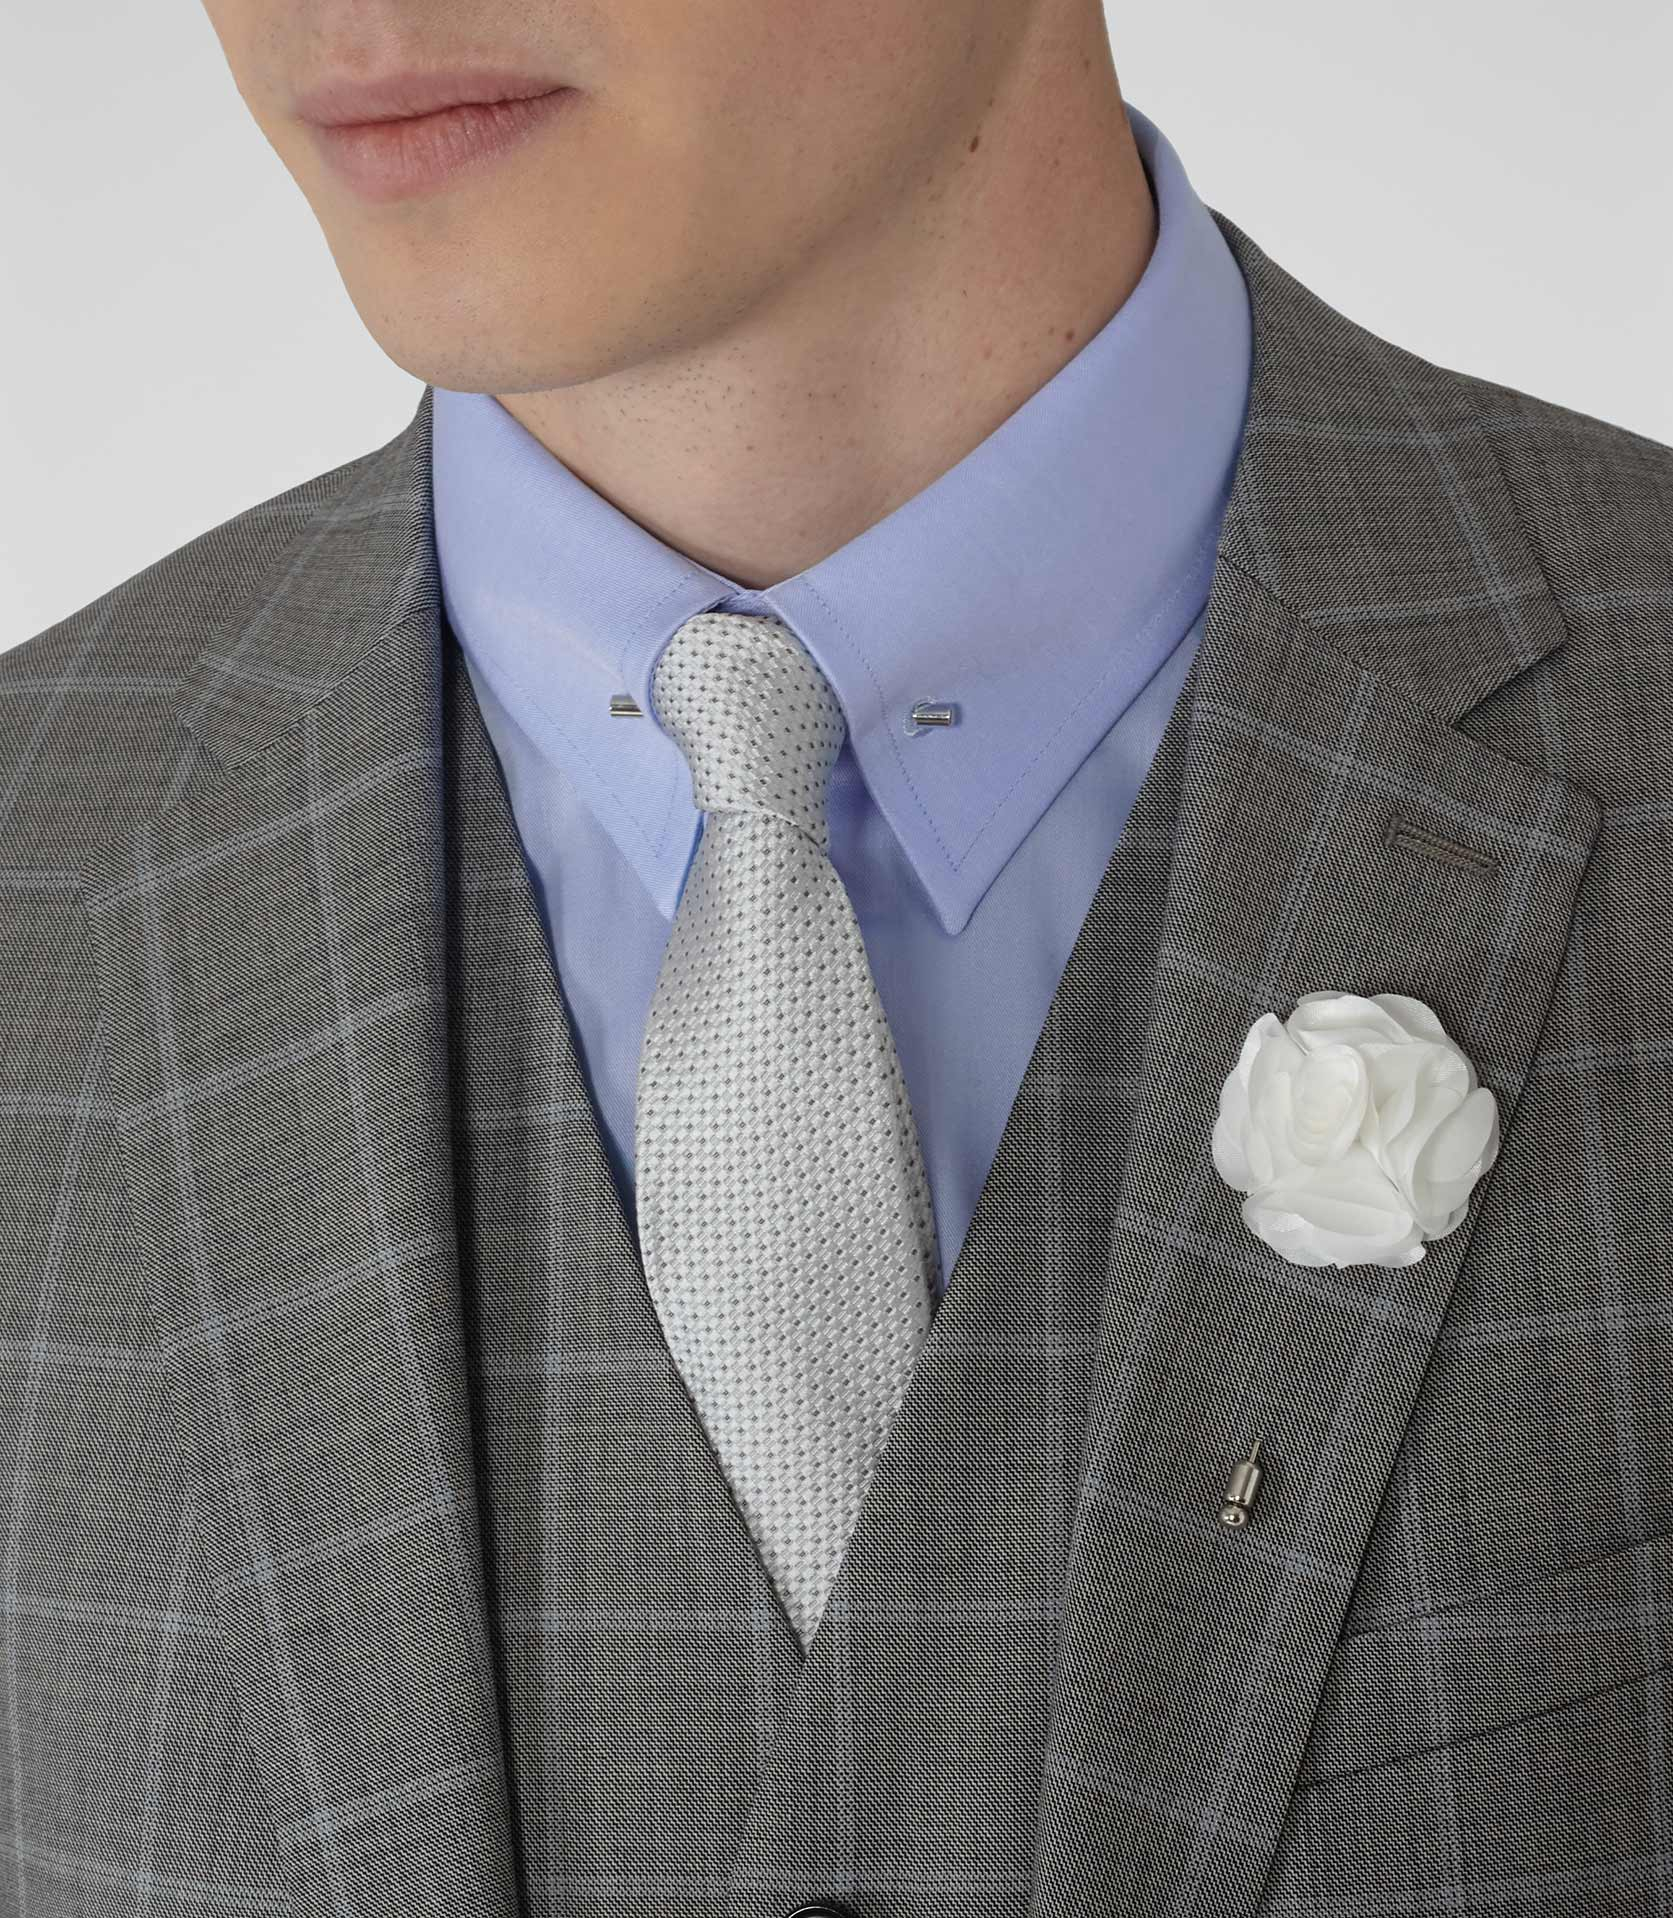 Reiss piani flower dress pin in white for men lyst for White shirt with collar pin